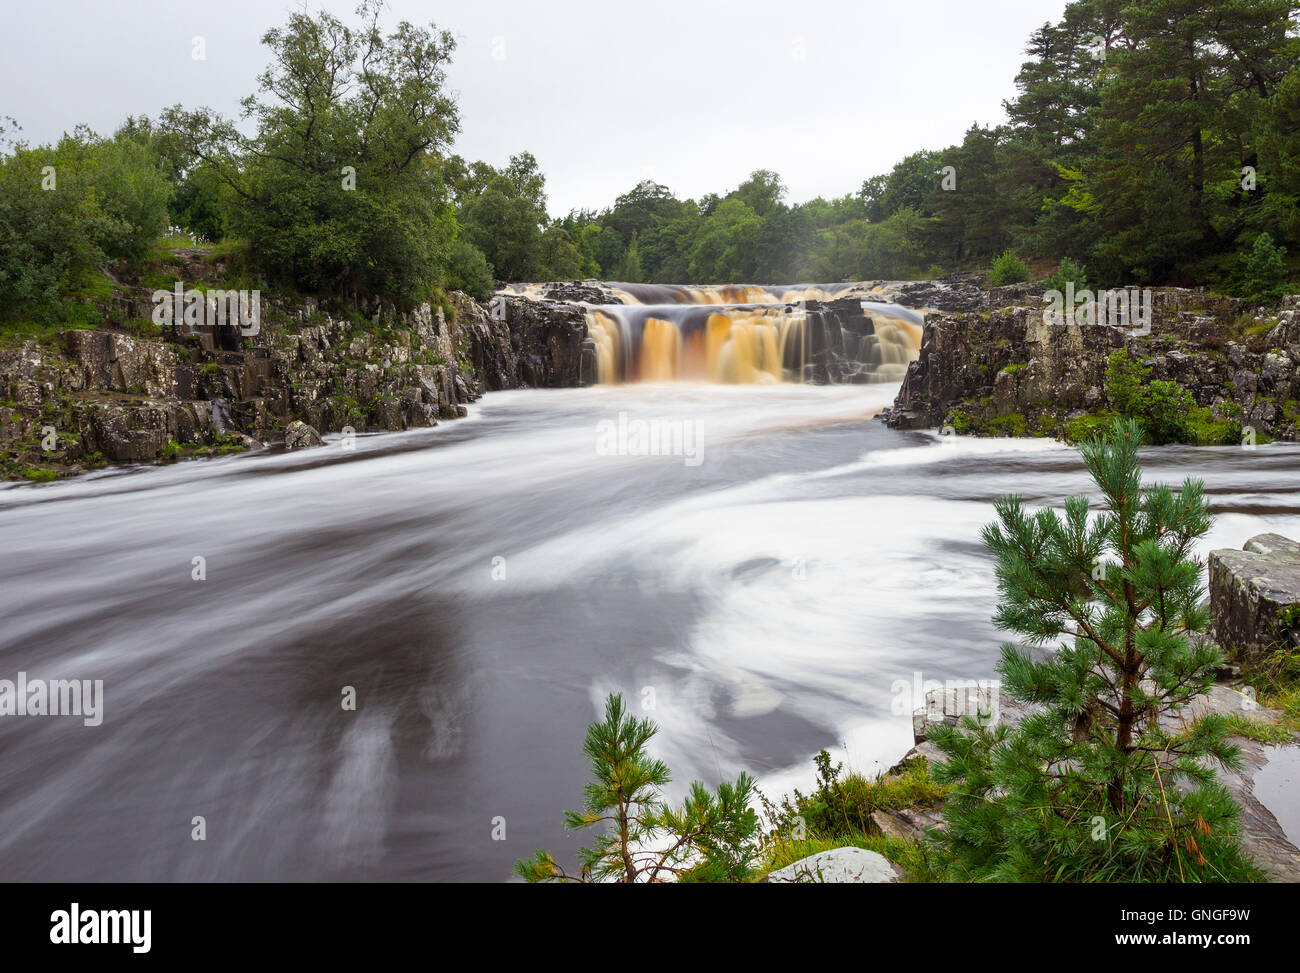 Low Force on a Rainy Summer Day, Bowlees, Teesdale, County Durham, UK - Stock Image